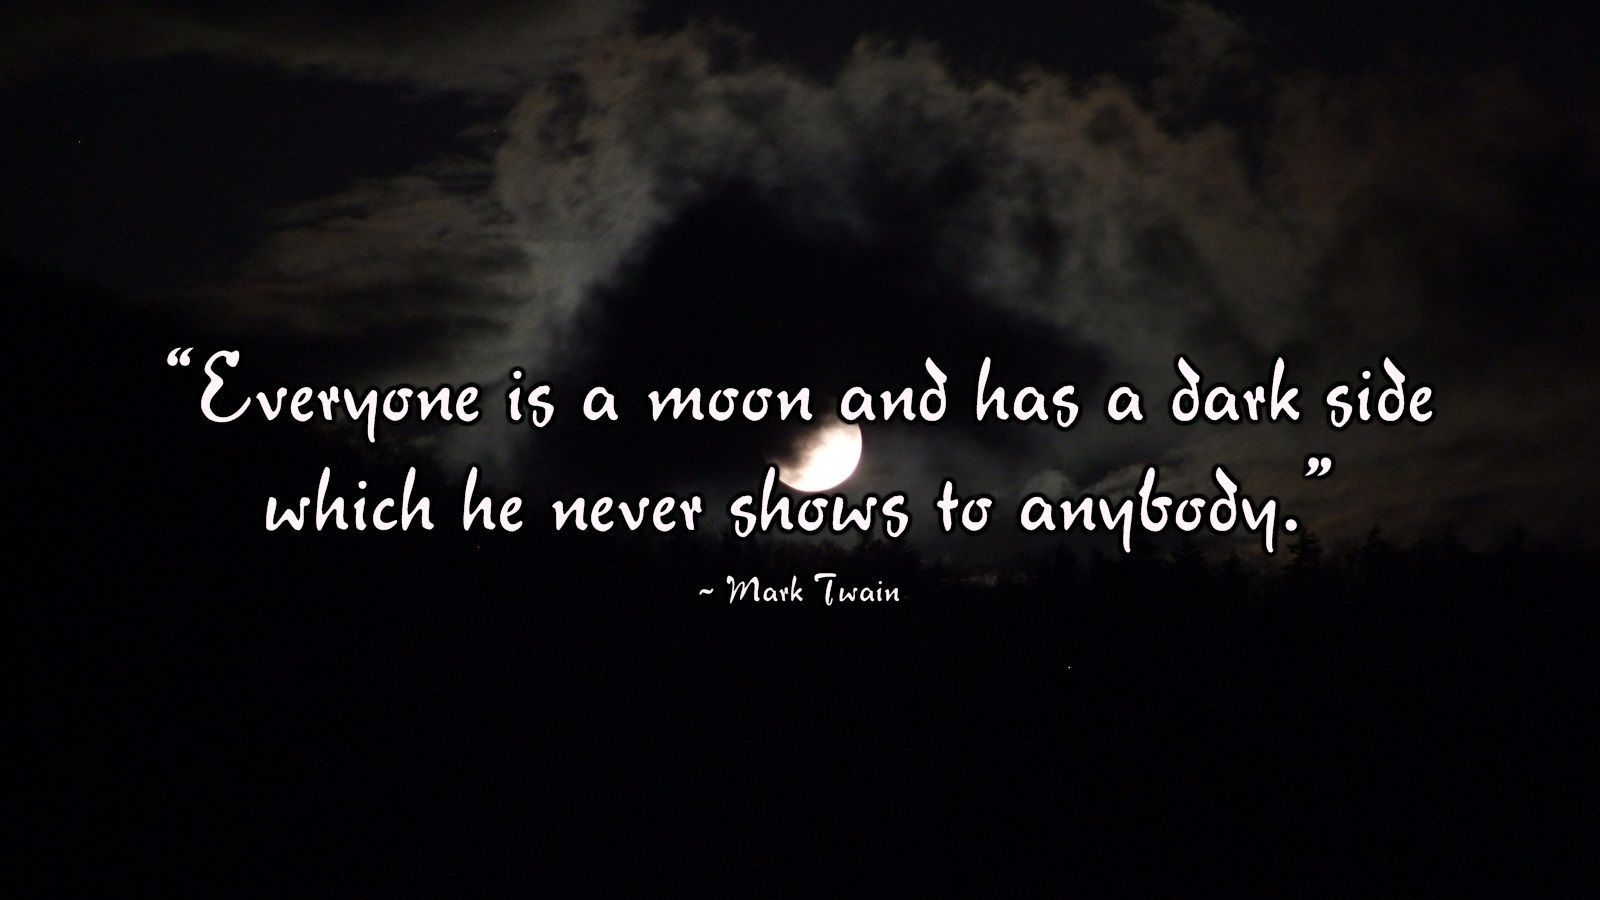 Dark Quotes About Life 15 Quotes About The Darkness | Quotes | Dark quotes, Quotes, Life  Dark Quotes About Life